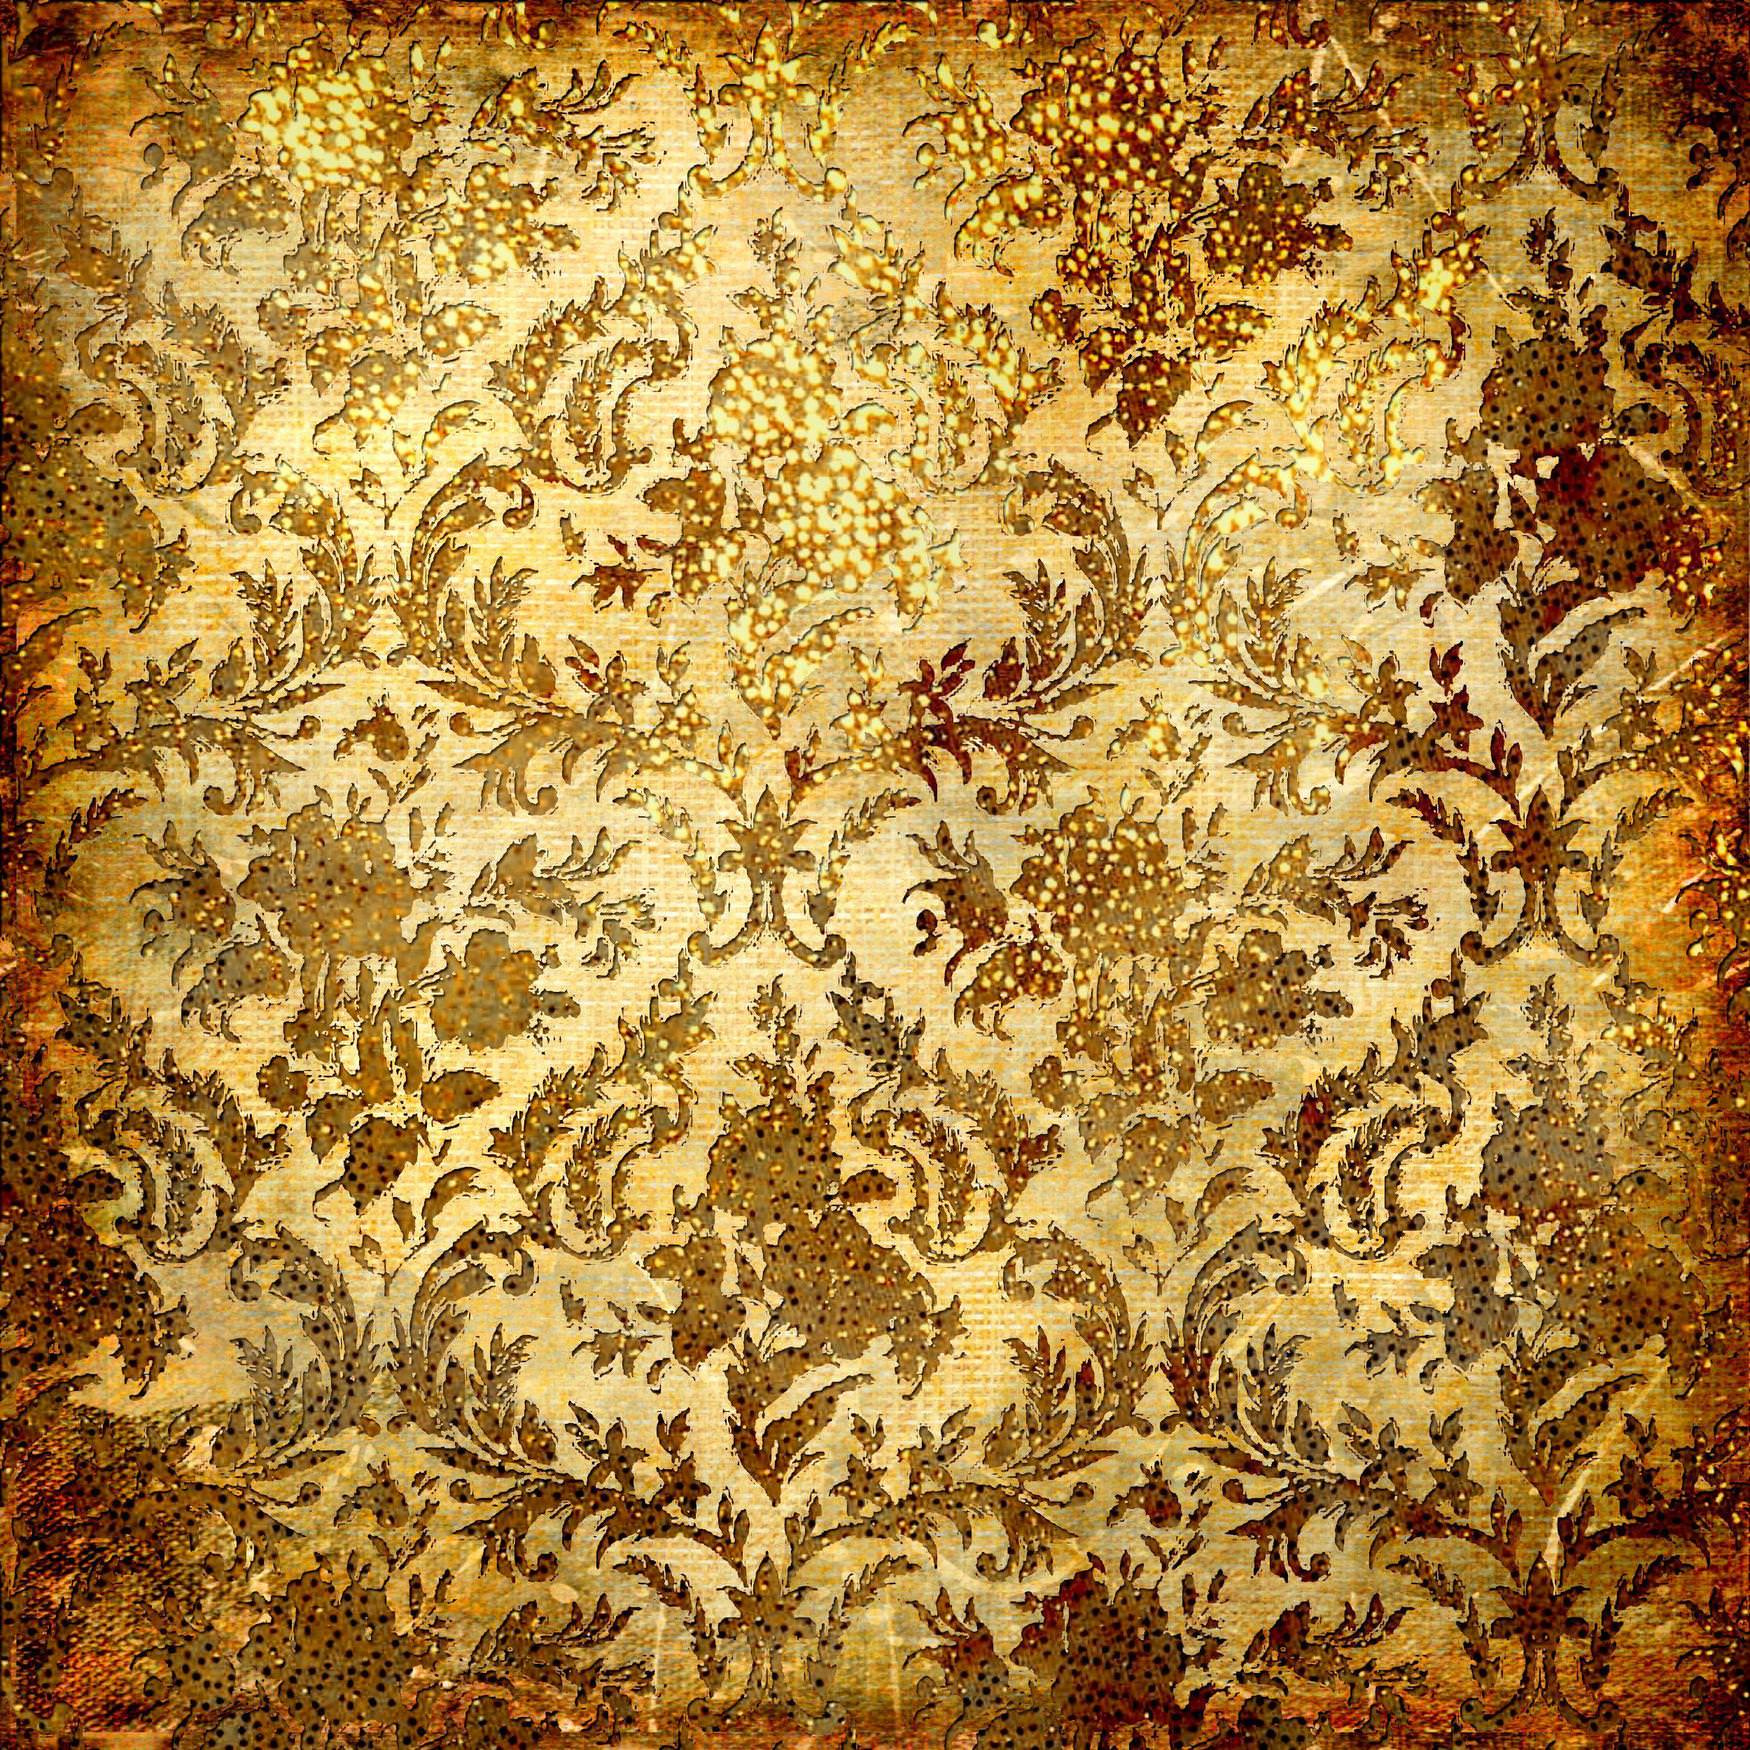 Artistic Gold Background